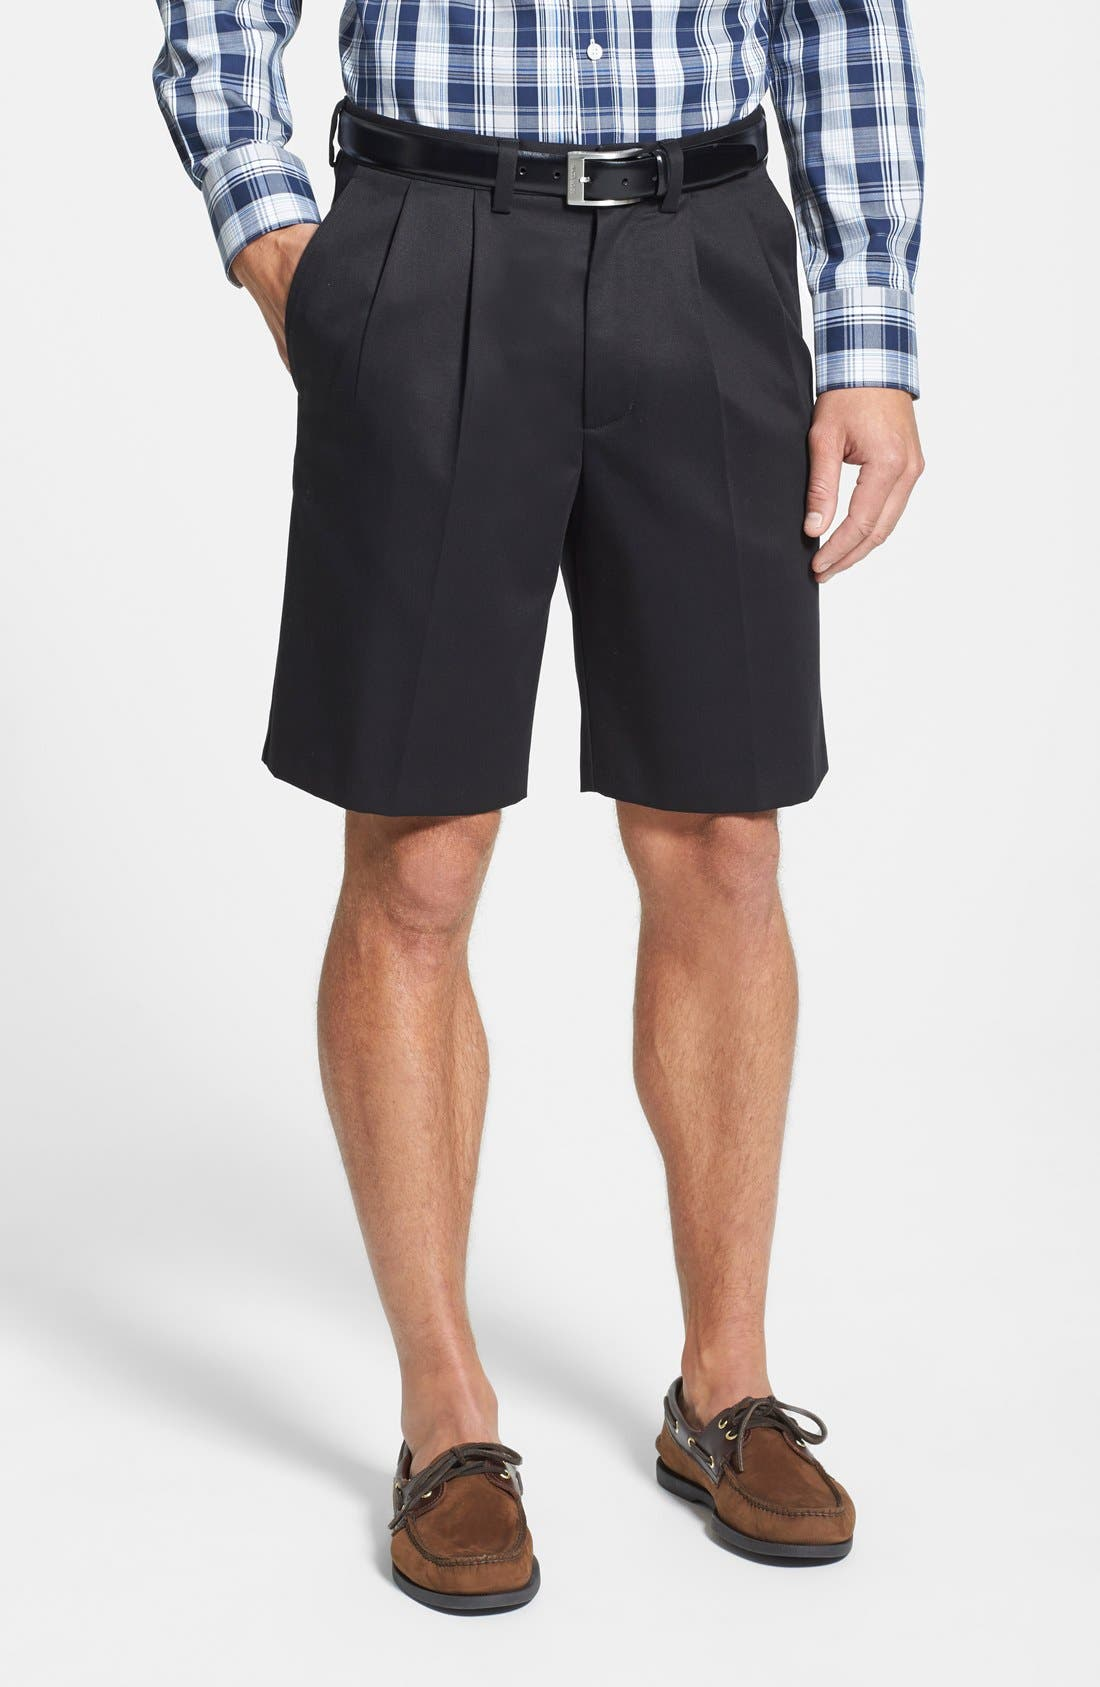 Mens Patterned Shorts Interesting Design Inspiration